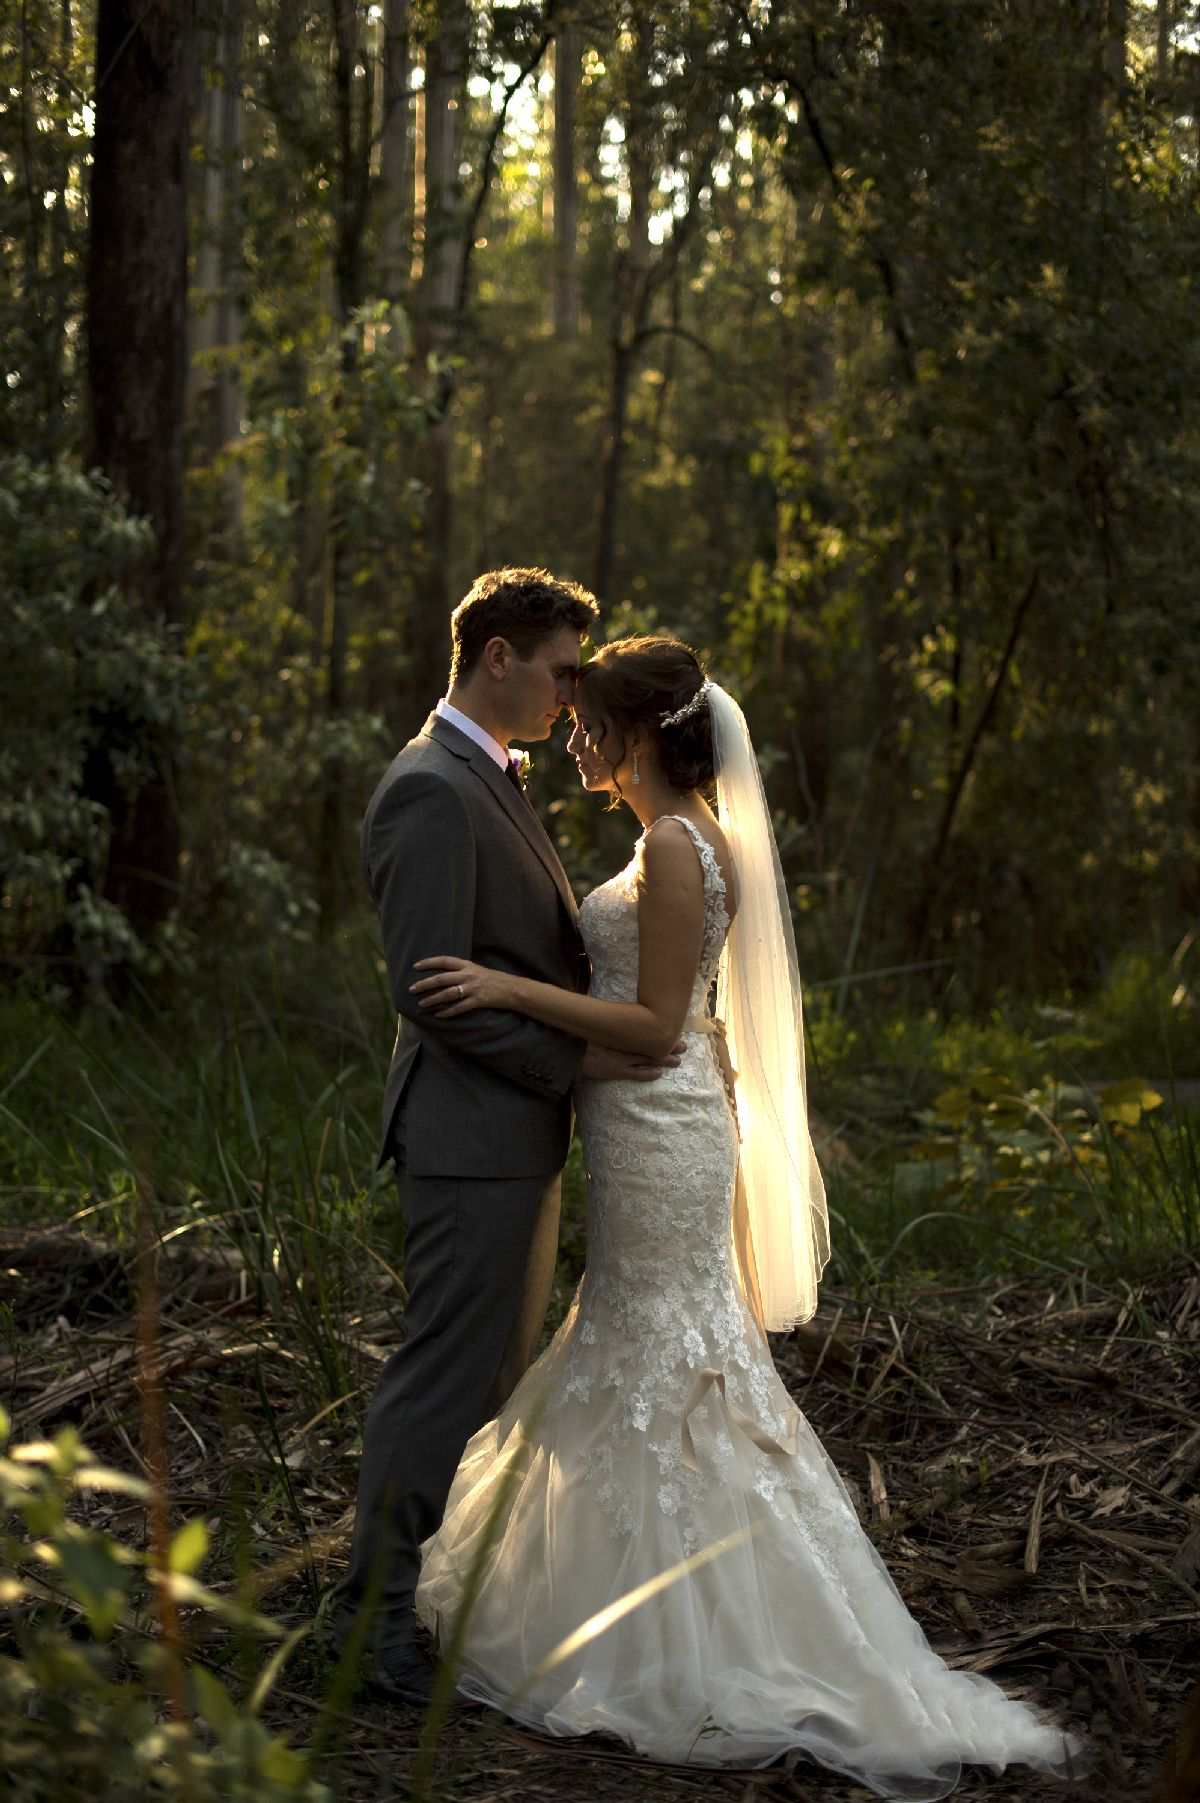 Bride and groom - A beautiful and whimsical forest wedding - itakeyou.co.uk